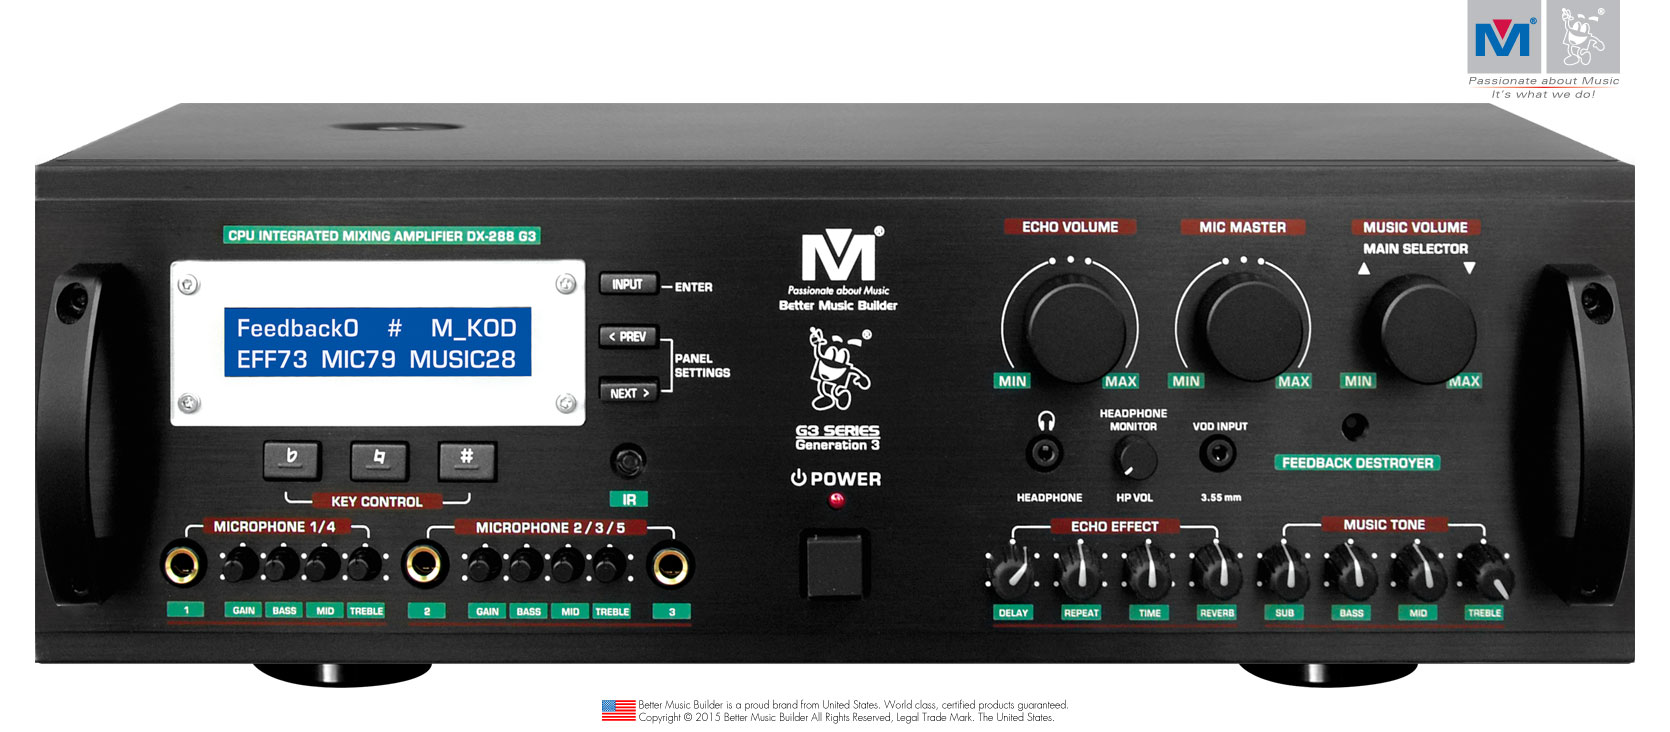 Dx 288 g3 900w cpu integrated mixing amplifier better for Www builder